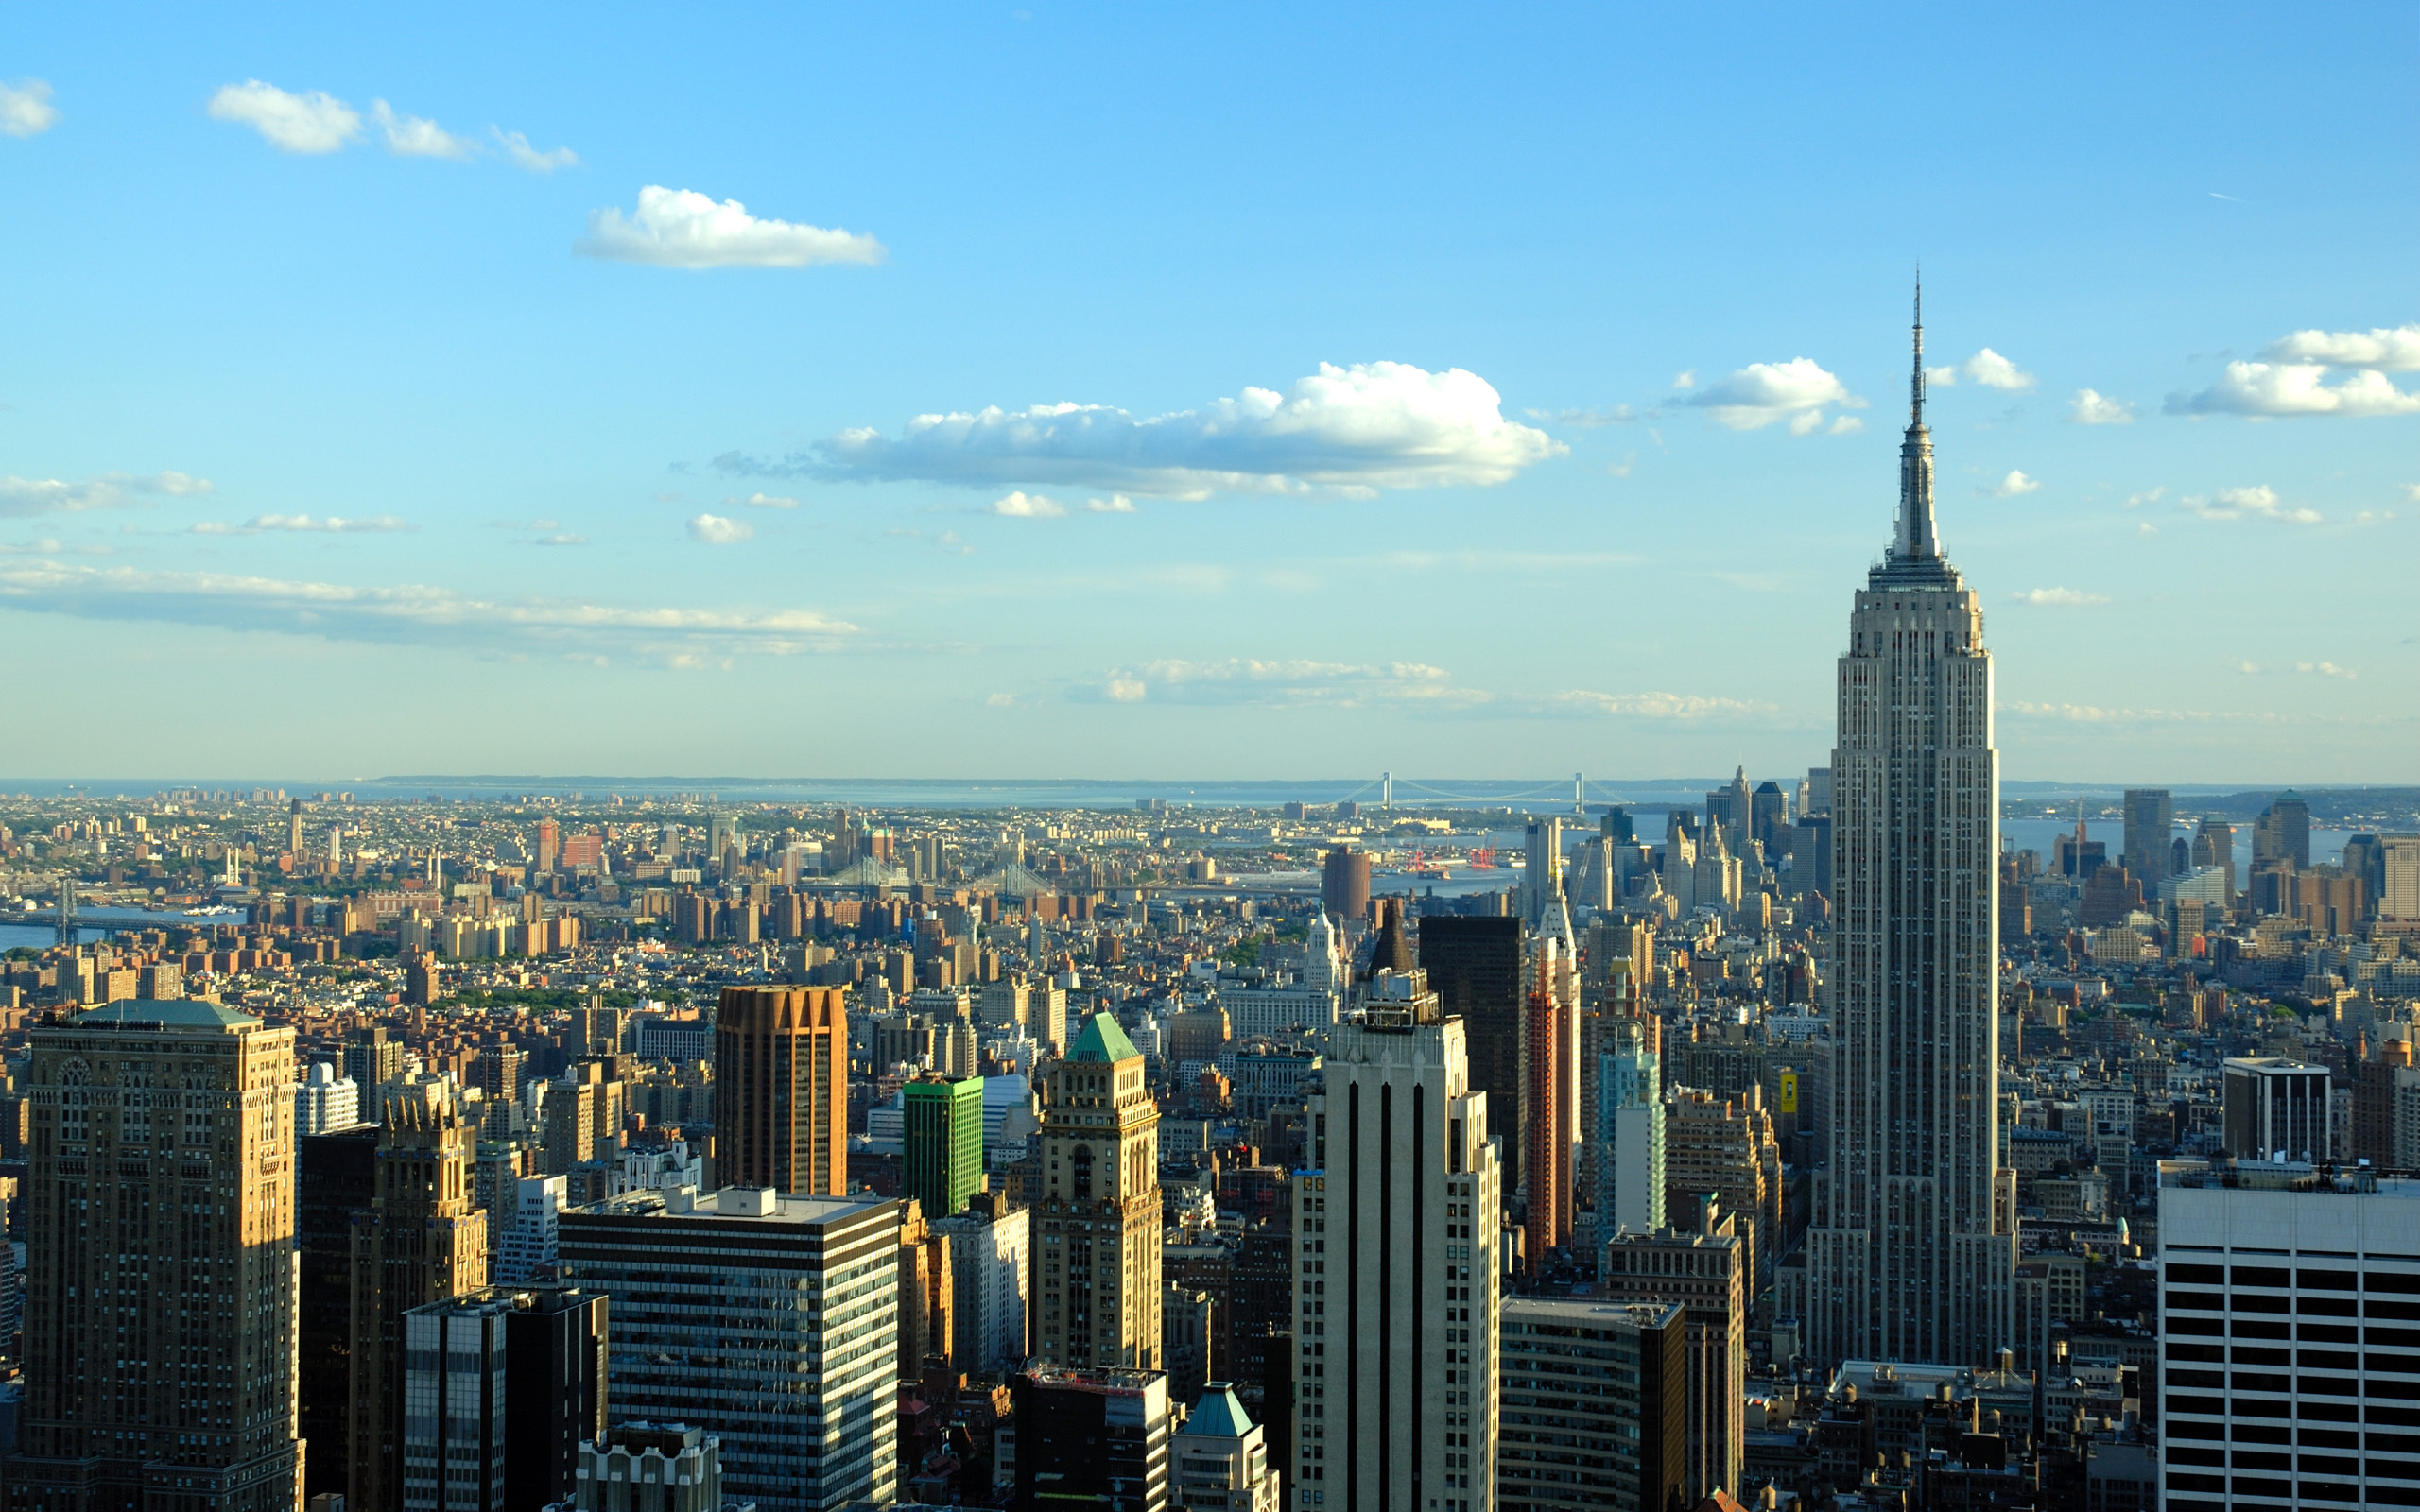 Safari New Jersey >> New York City Wallpaper Skyline - WallpaperSafari